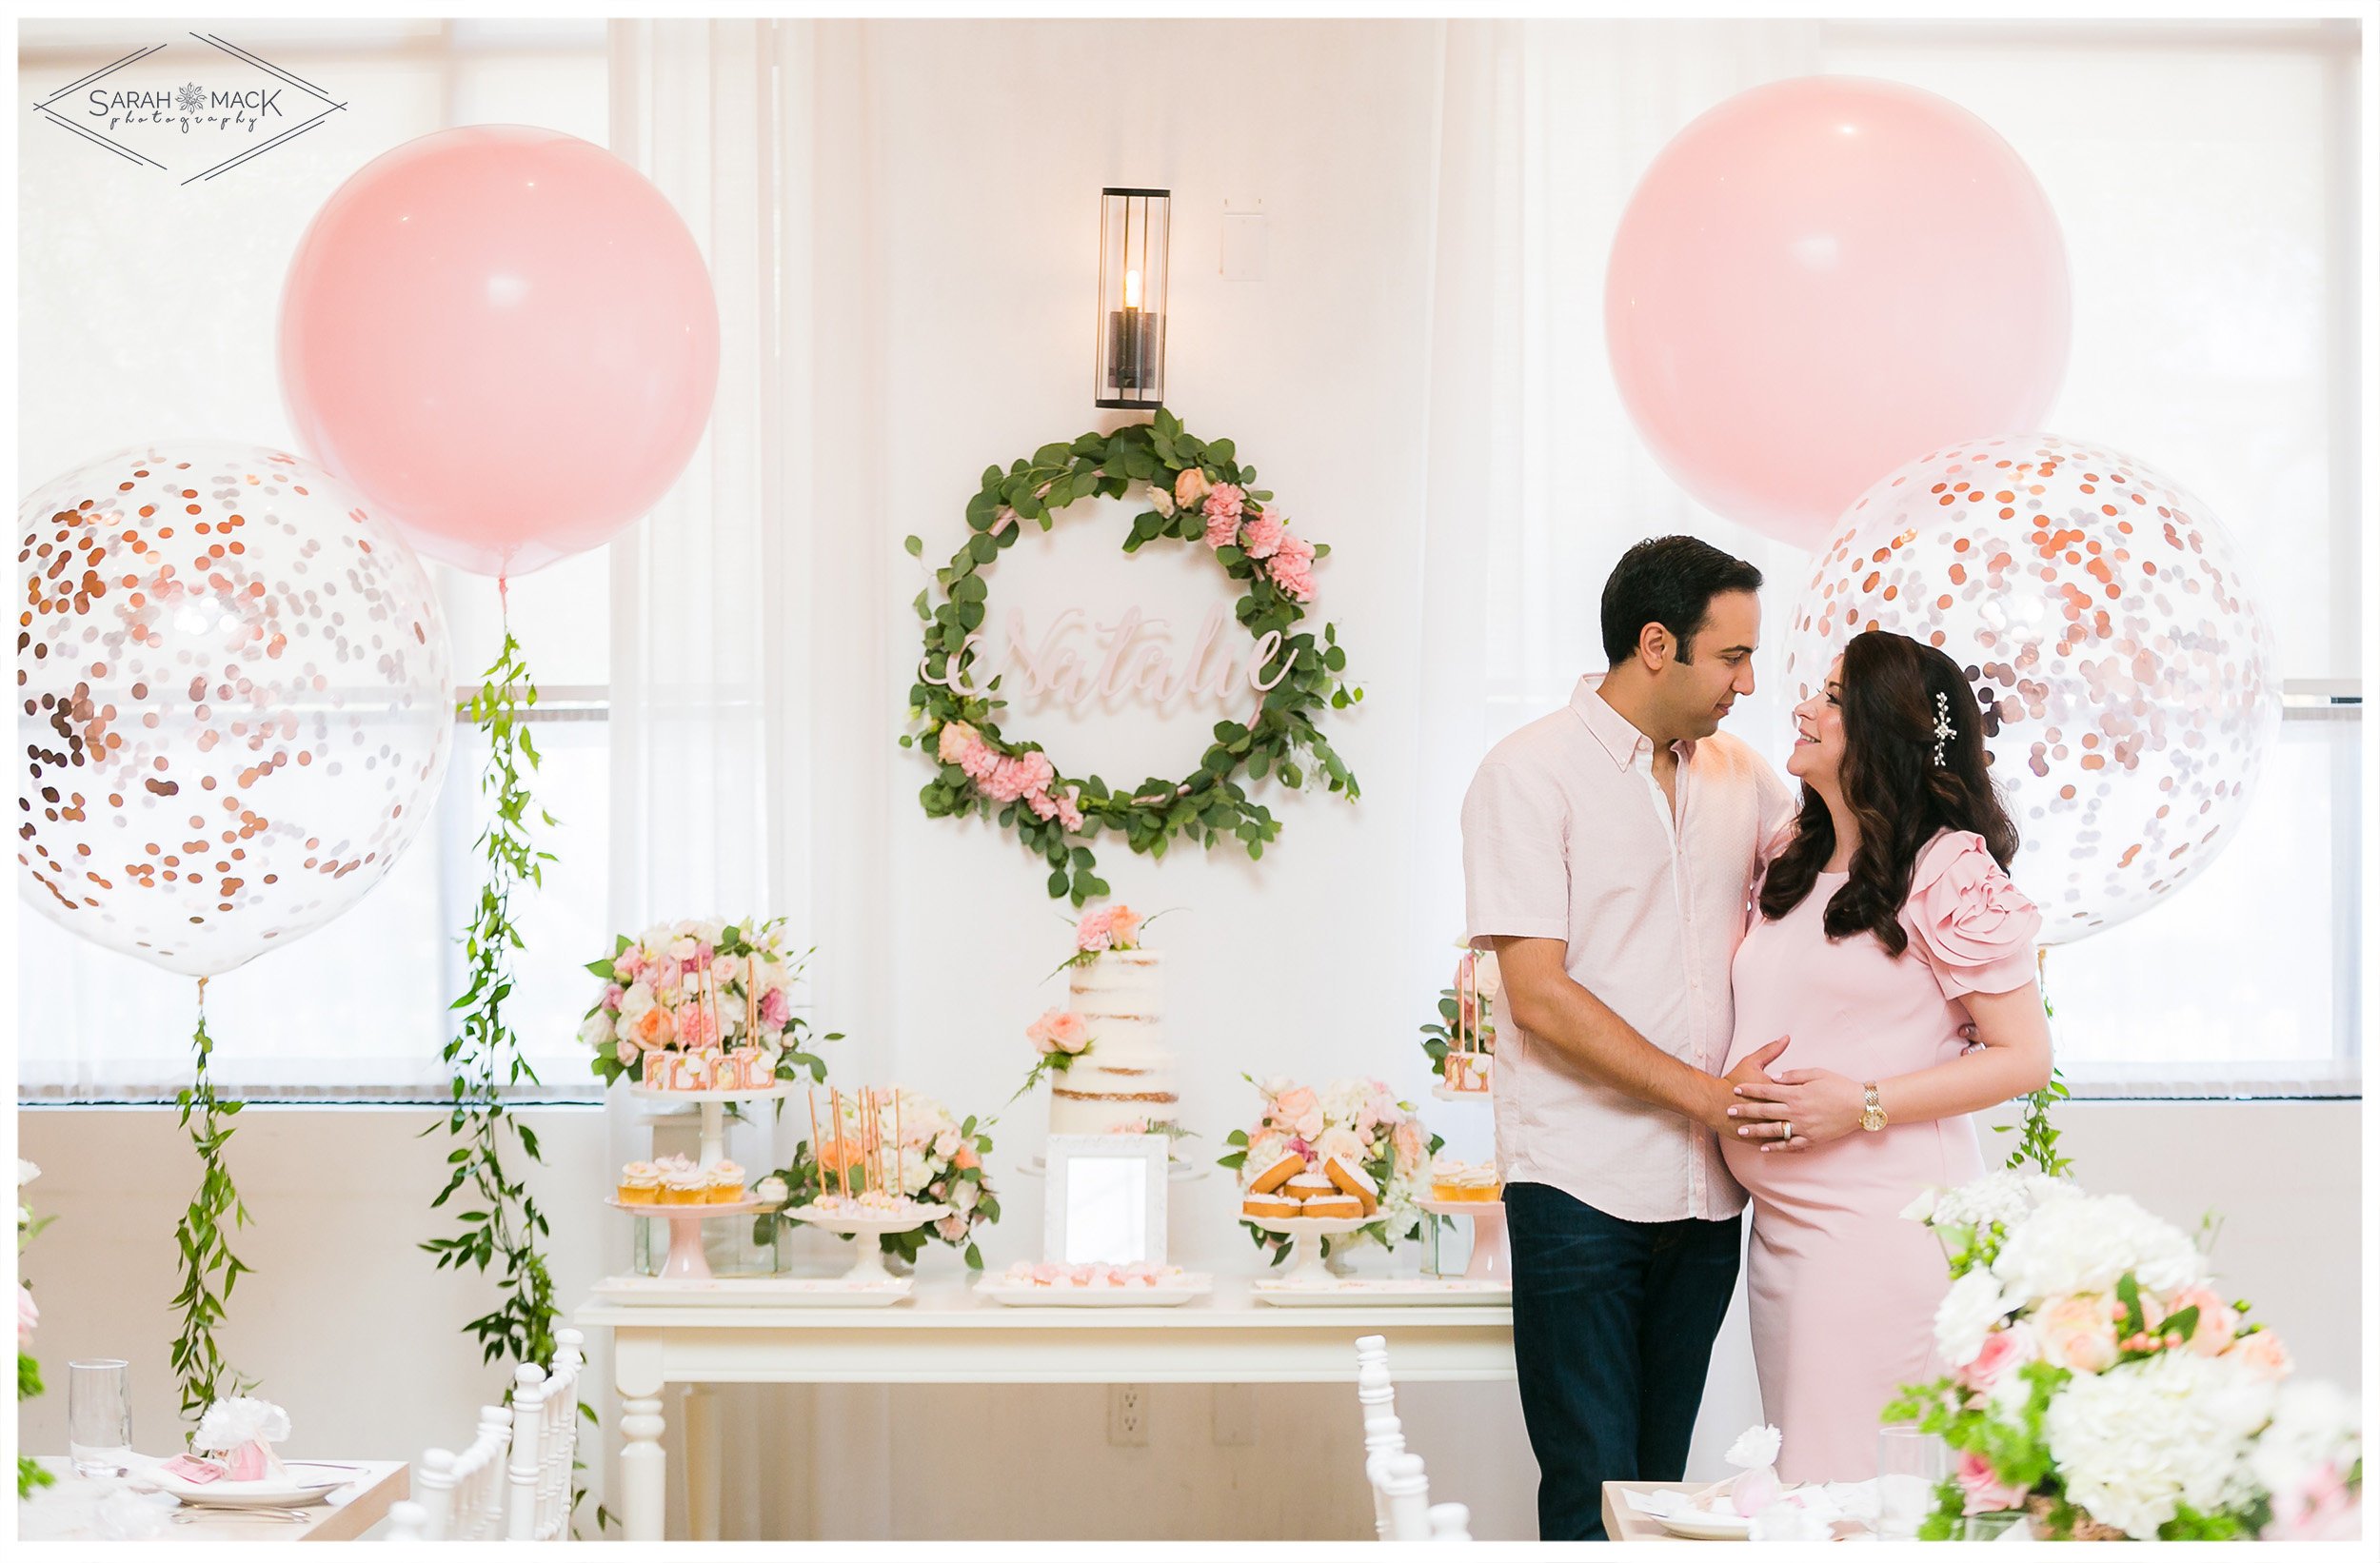 M-Fig-and-Olive-Newport-Beach-Baby-Shower-Photography-4.jpg